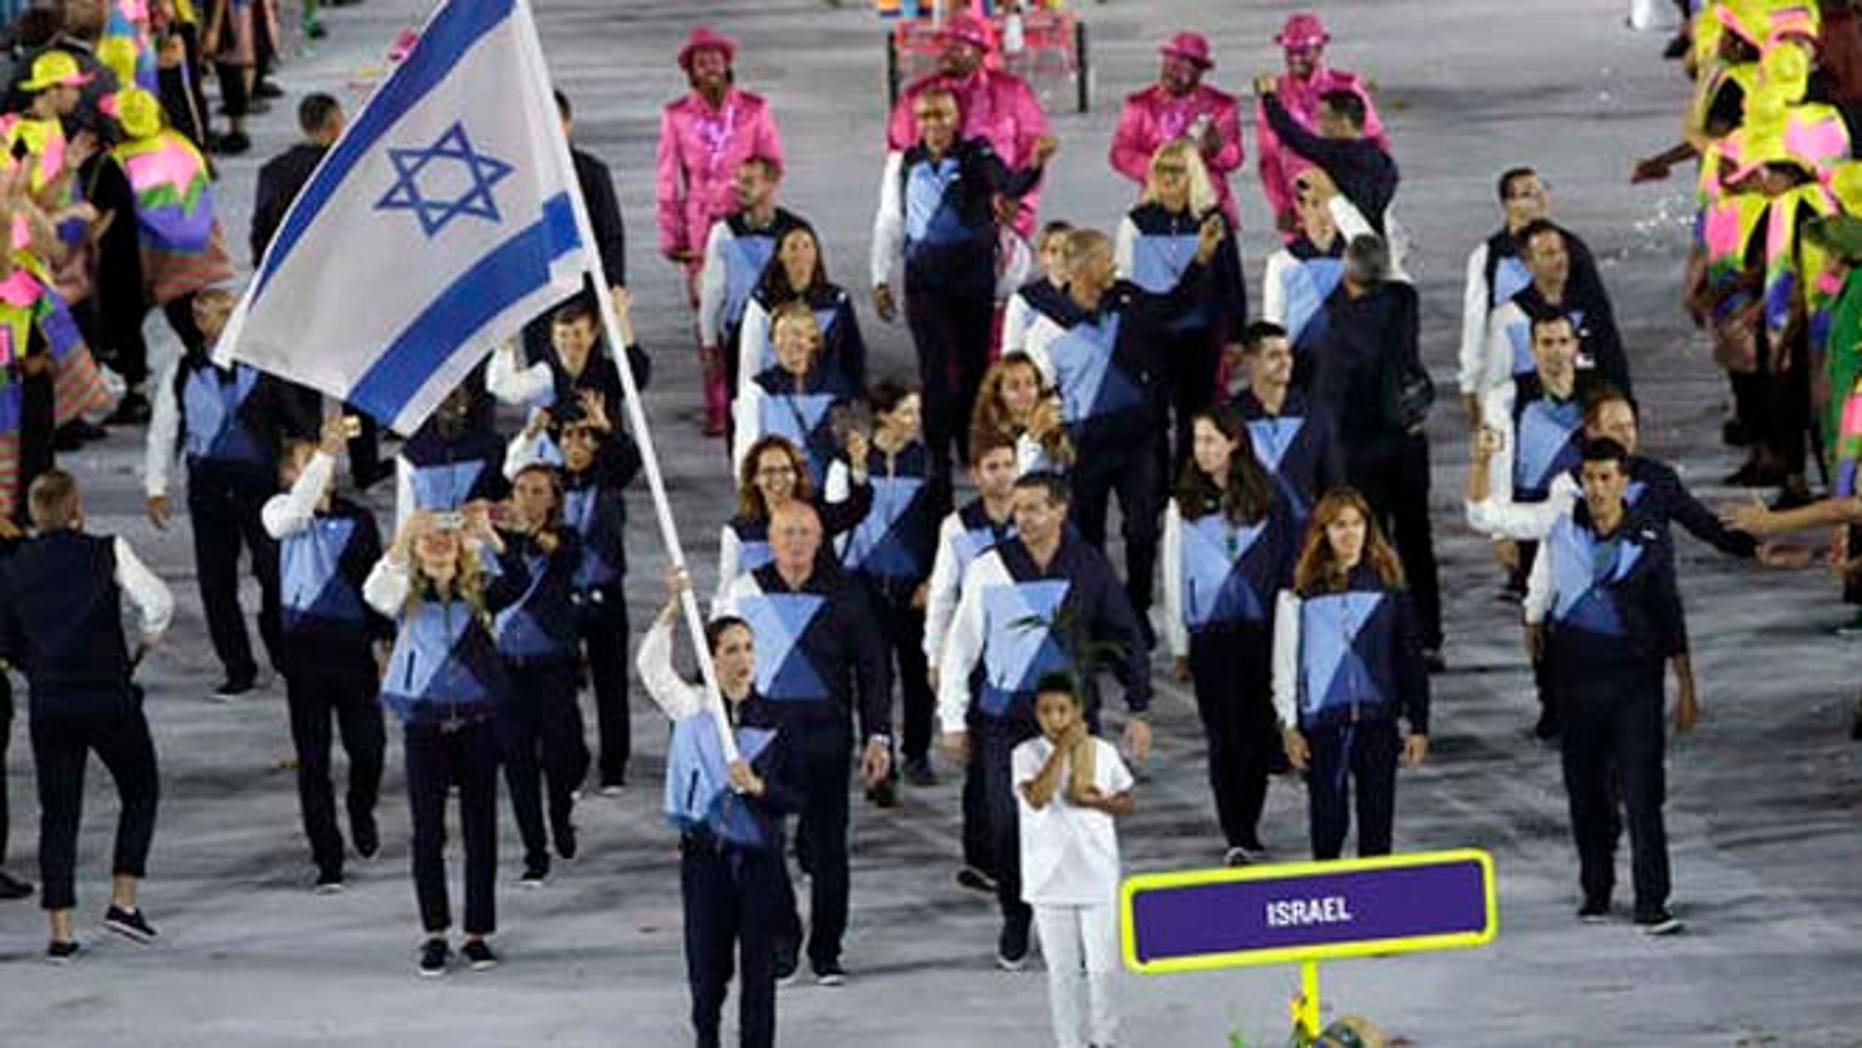 Neta Rivkin carries the flag of Israel during the opening ceremony for the 2016 Summer Olympics in Rio de Janeiro, Brazil, Friday, Aug. 5.